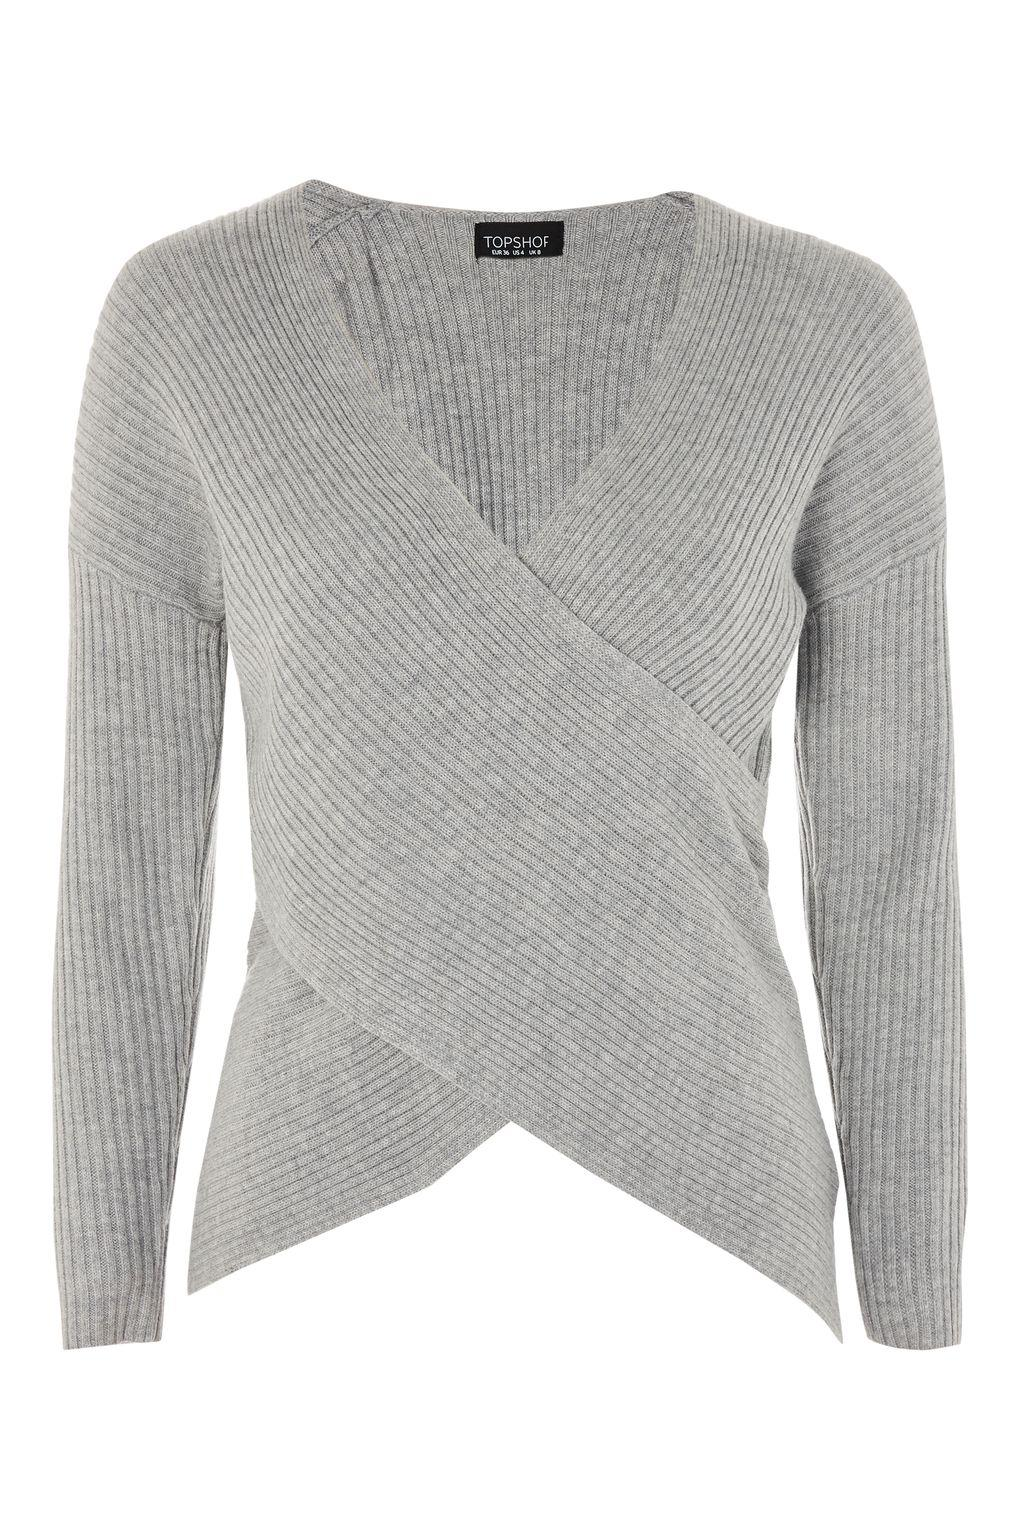 TOPSHOP Cashmere Wrap Top in Grey (Grey)